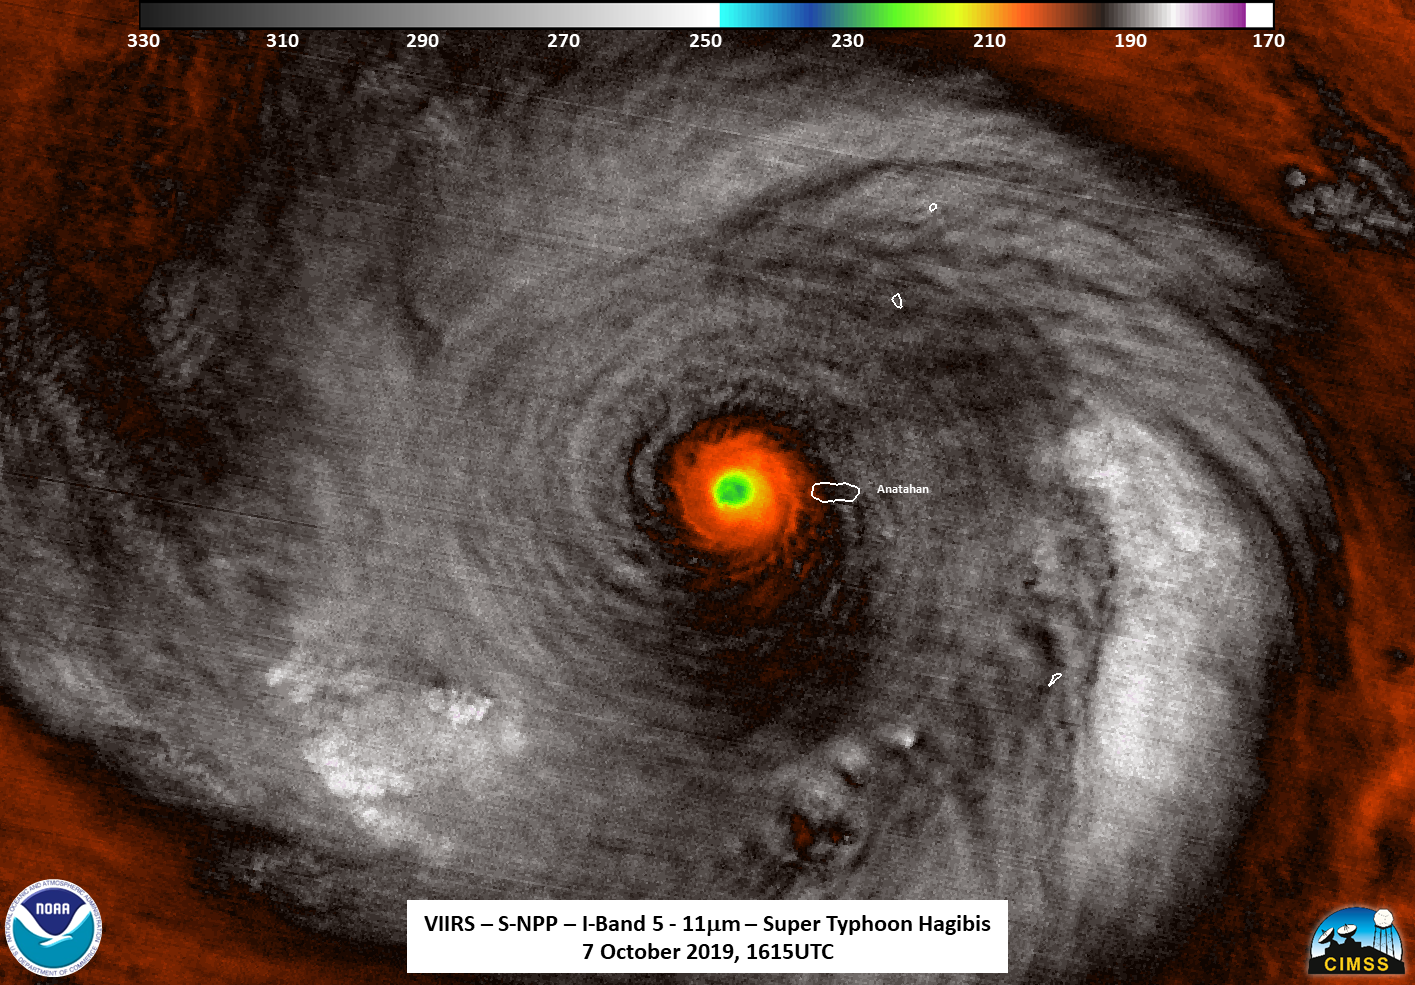 hurricane in black and white, with red/yellow eye